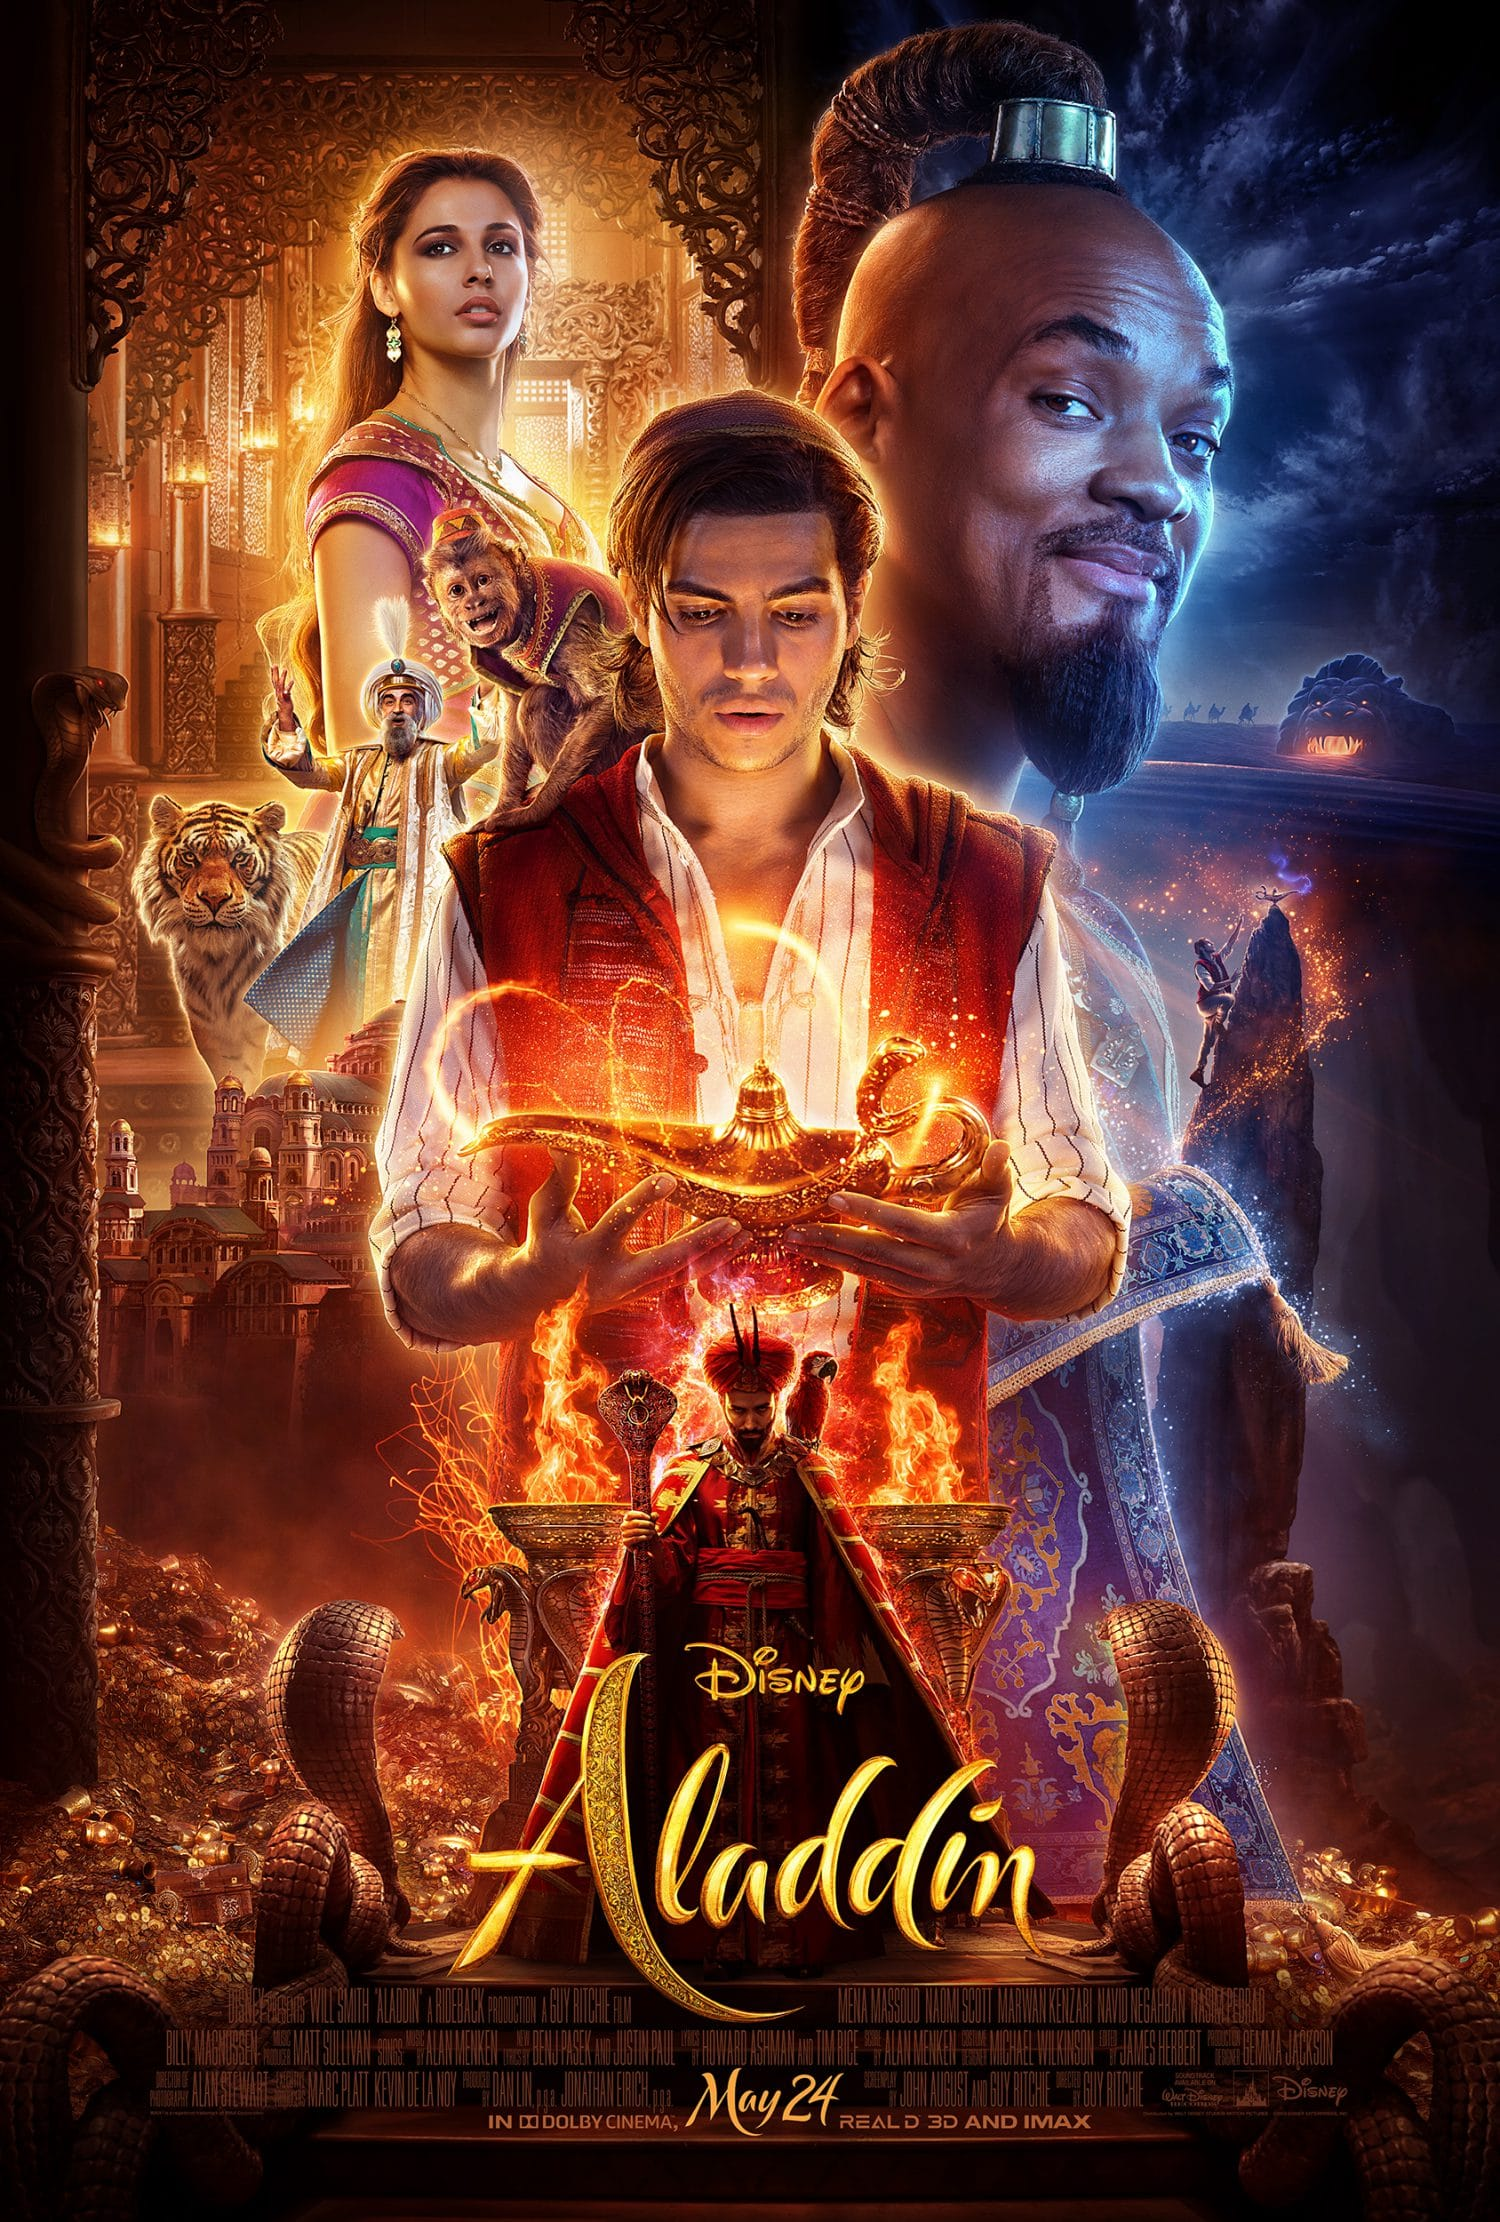 Take a look at the one sheet poster for the new live action Aladdin movie from Disney.